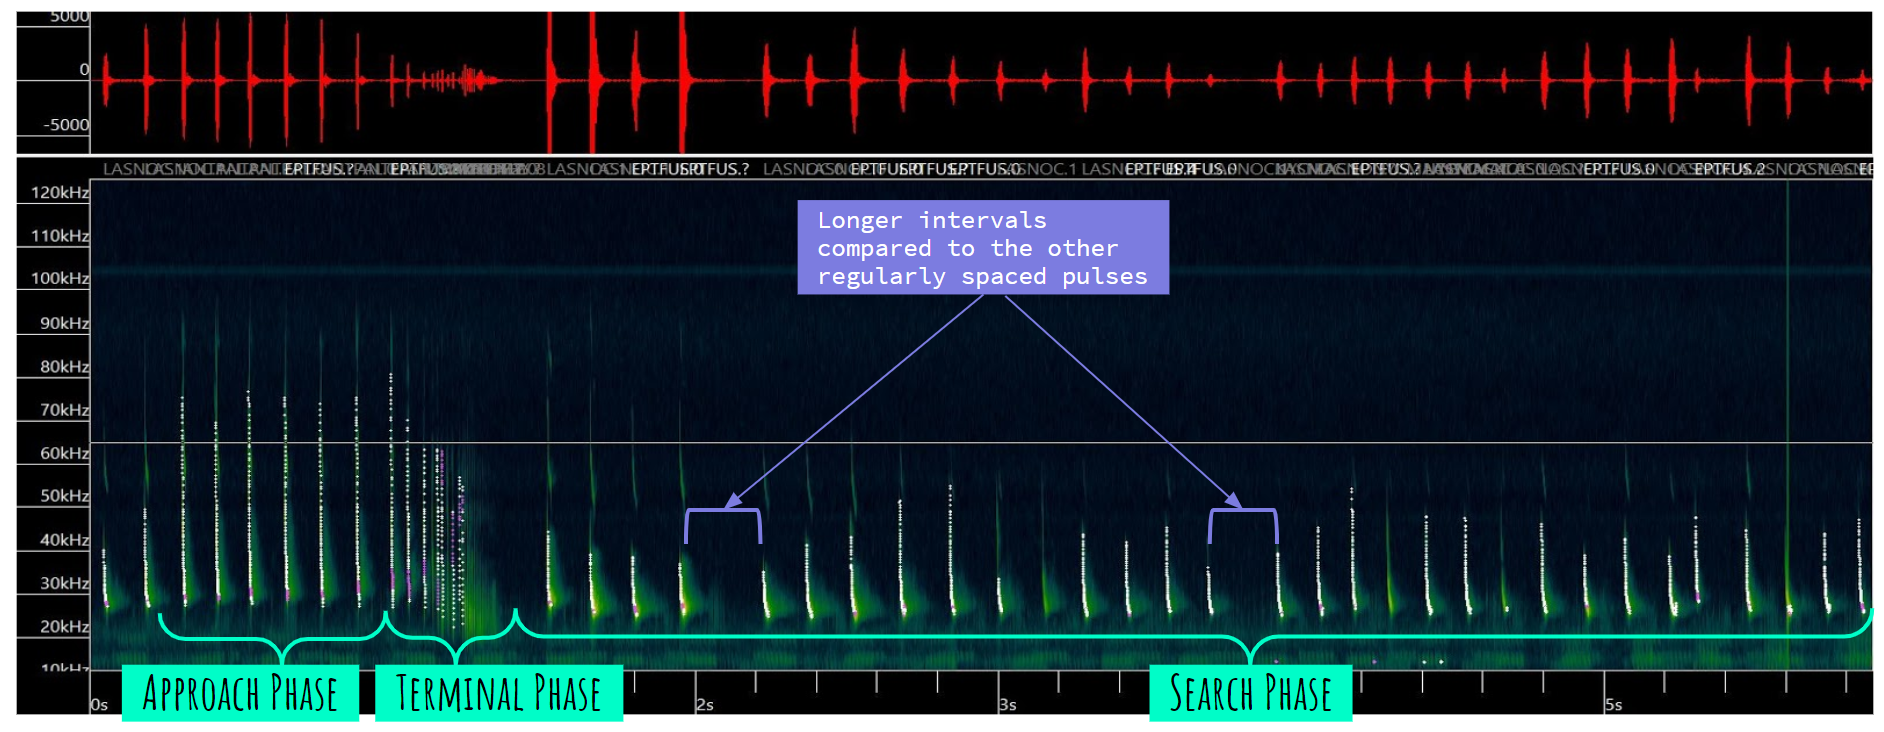 Figure 2. Visualization of a recording of vocalizations, or calls, by a Big brown bat (Eptesicus fuscus). The upper portion is the oscillogram that measures amplitude, with the lower portion is the spectrogram that measures frequency. The variation in call intervals, a common character of Big brown bat calls, is indicated as well as the three main phases of vocalizations used during foraging for prey: search, approach, and terminal phases.